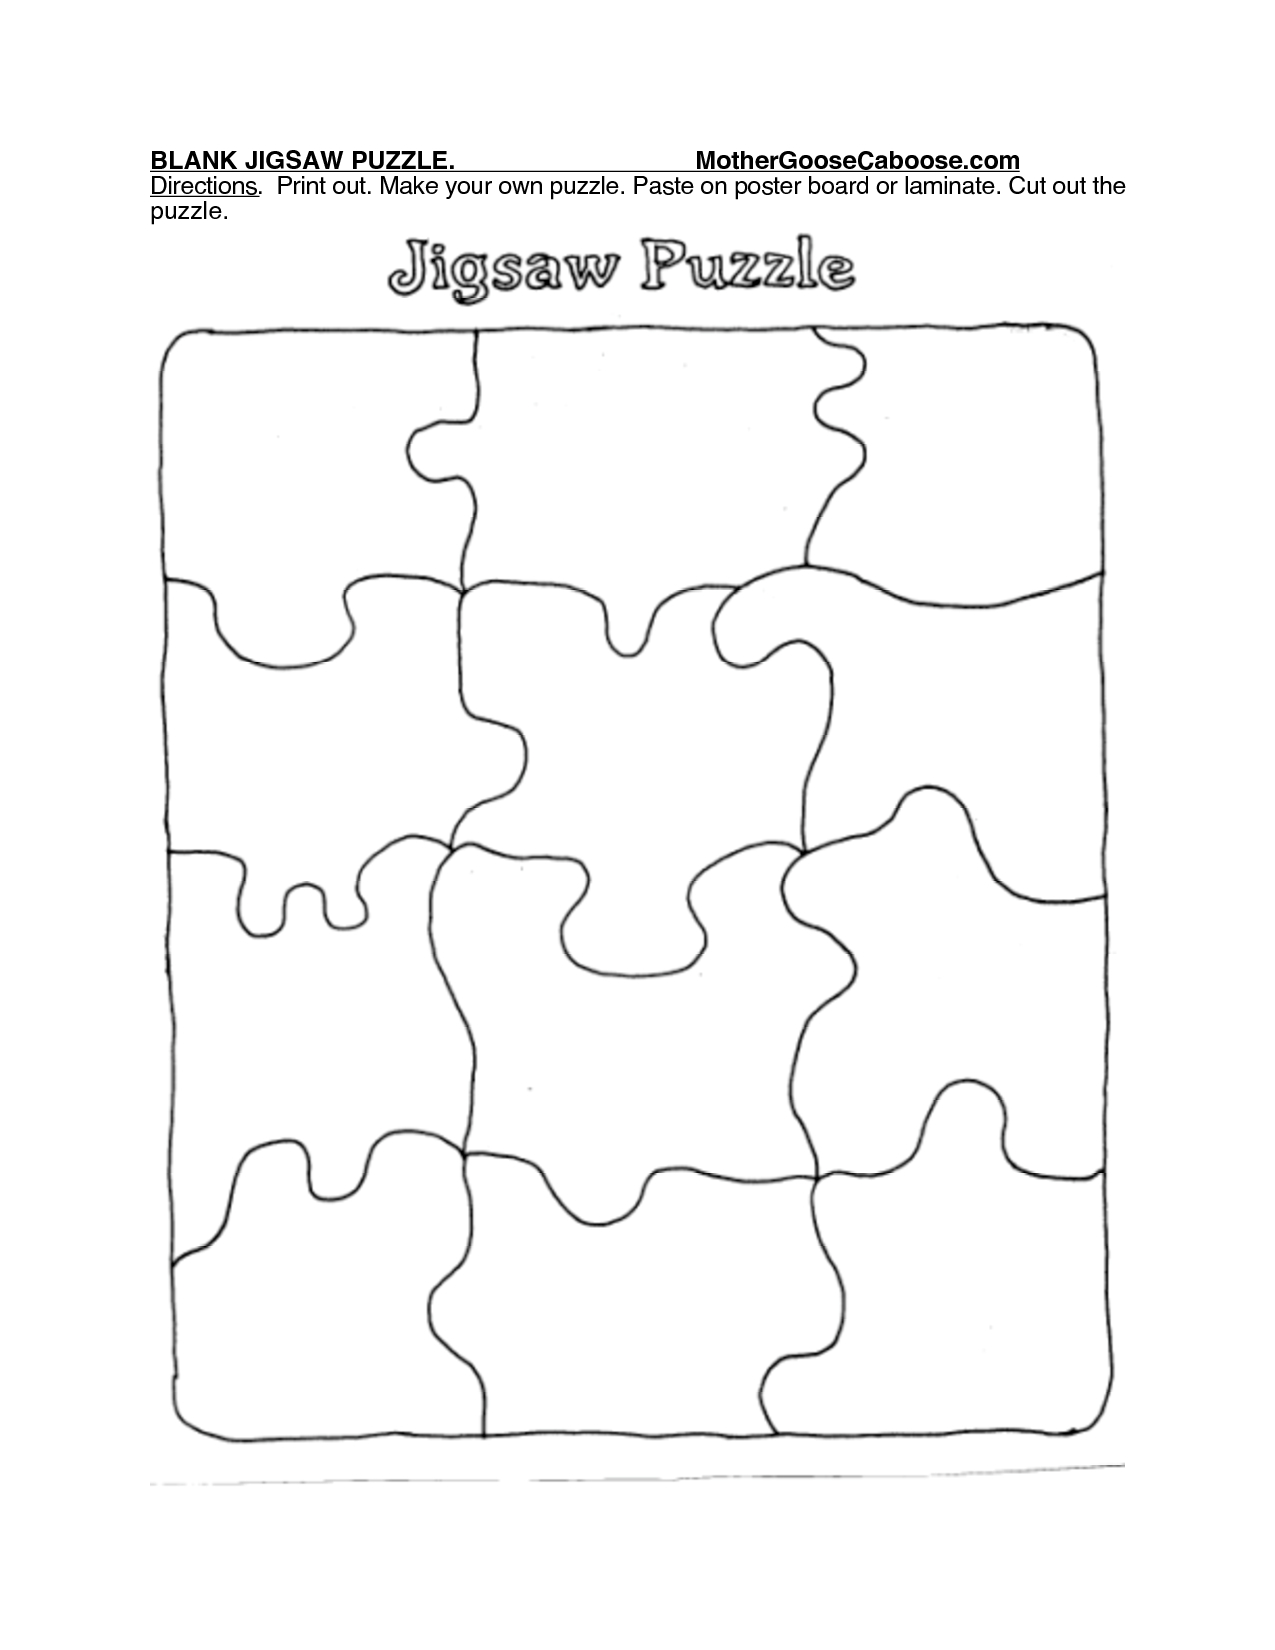 Printable Puzzle Piece Template | Search Results | New Calendar - Printable Puzzles Template